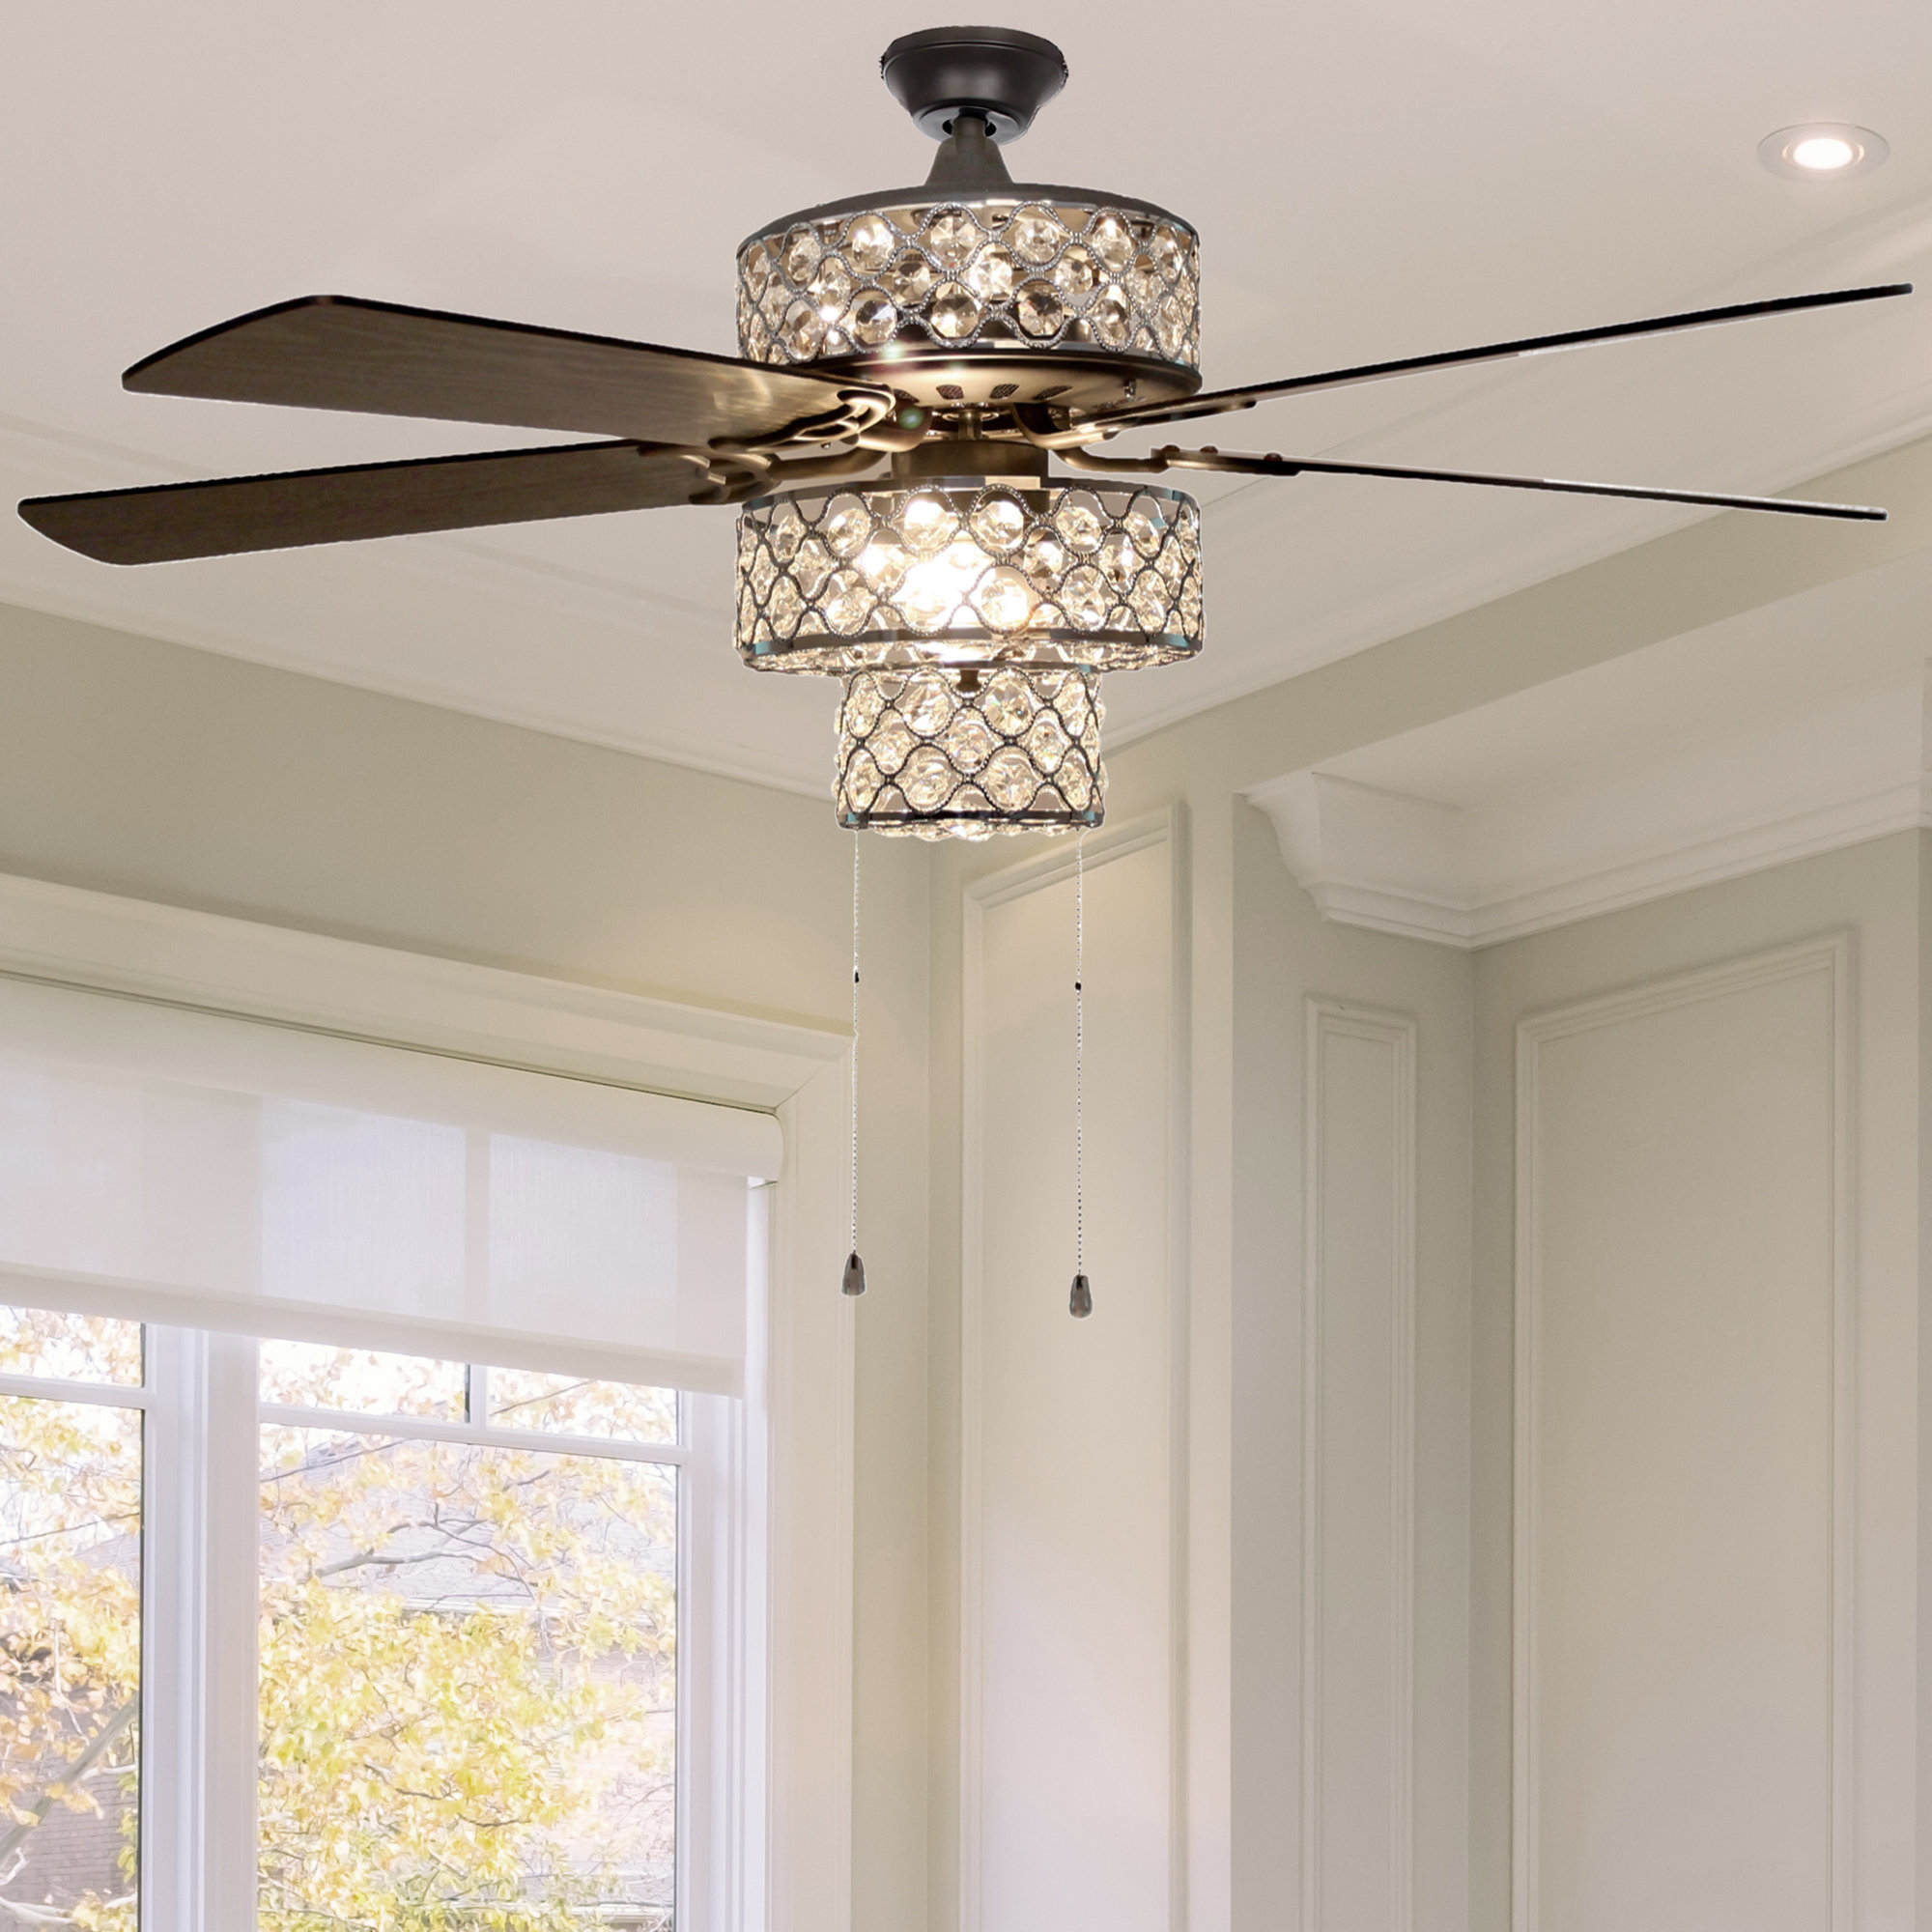 "Most Recent House Of Hampton 52"" Marleigh Tri Tiered 5 Blade Ceiling Fan With Remote, Light Kit Included For Fredericksen 5 Blade Ceiling Fans (View 4 of 20)"